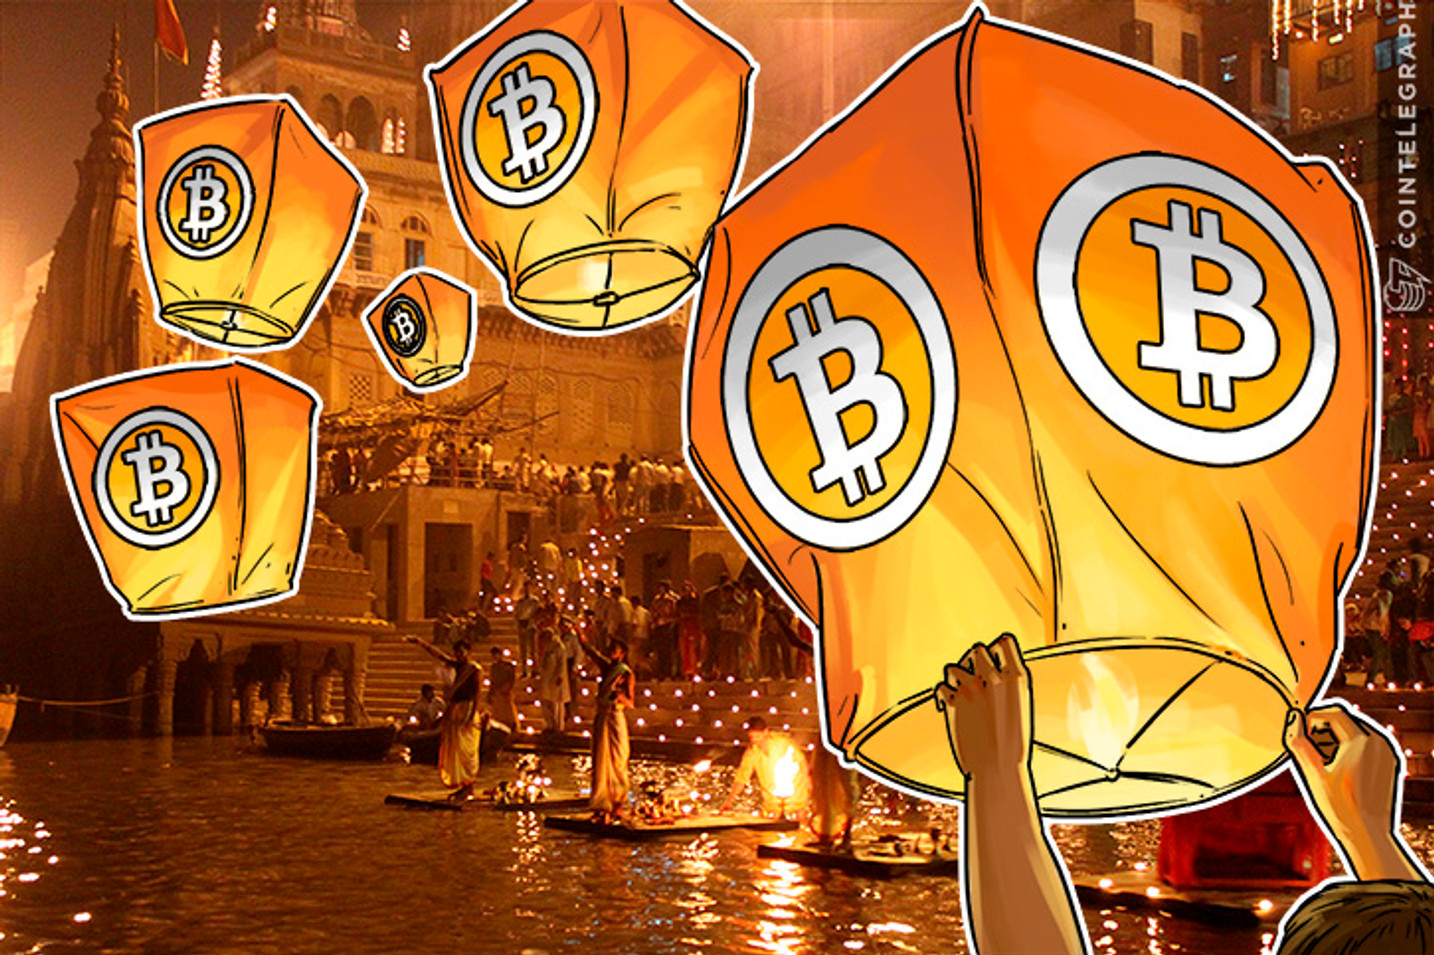 Bitcoin Demand Explodes in India, Overwhelmed Exchanges Put Limits on Purchases